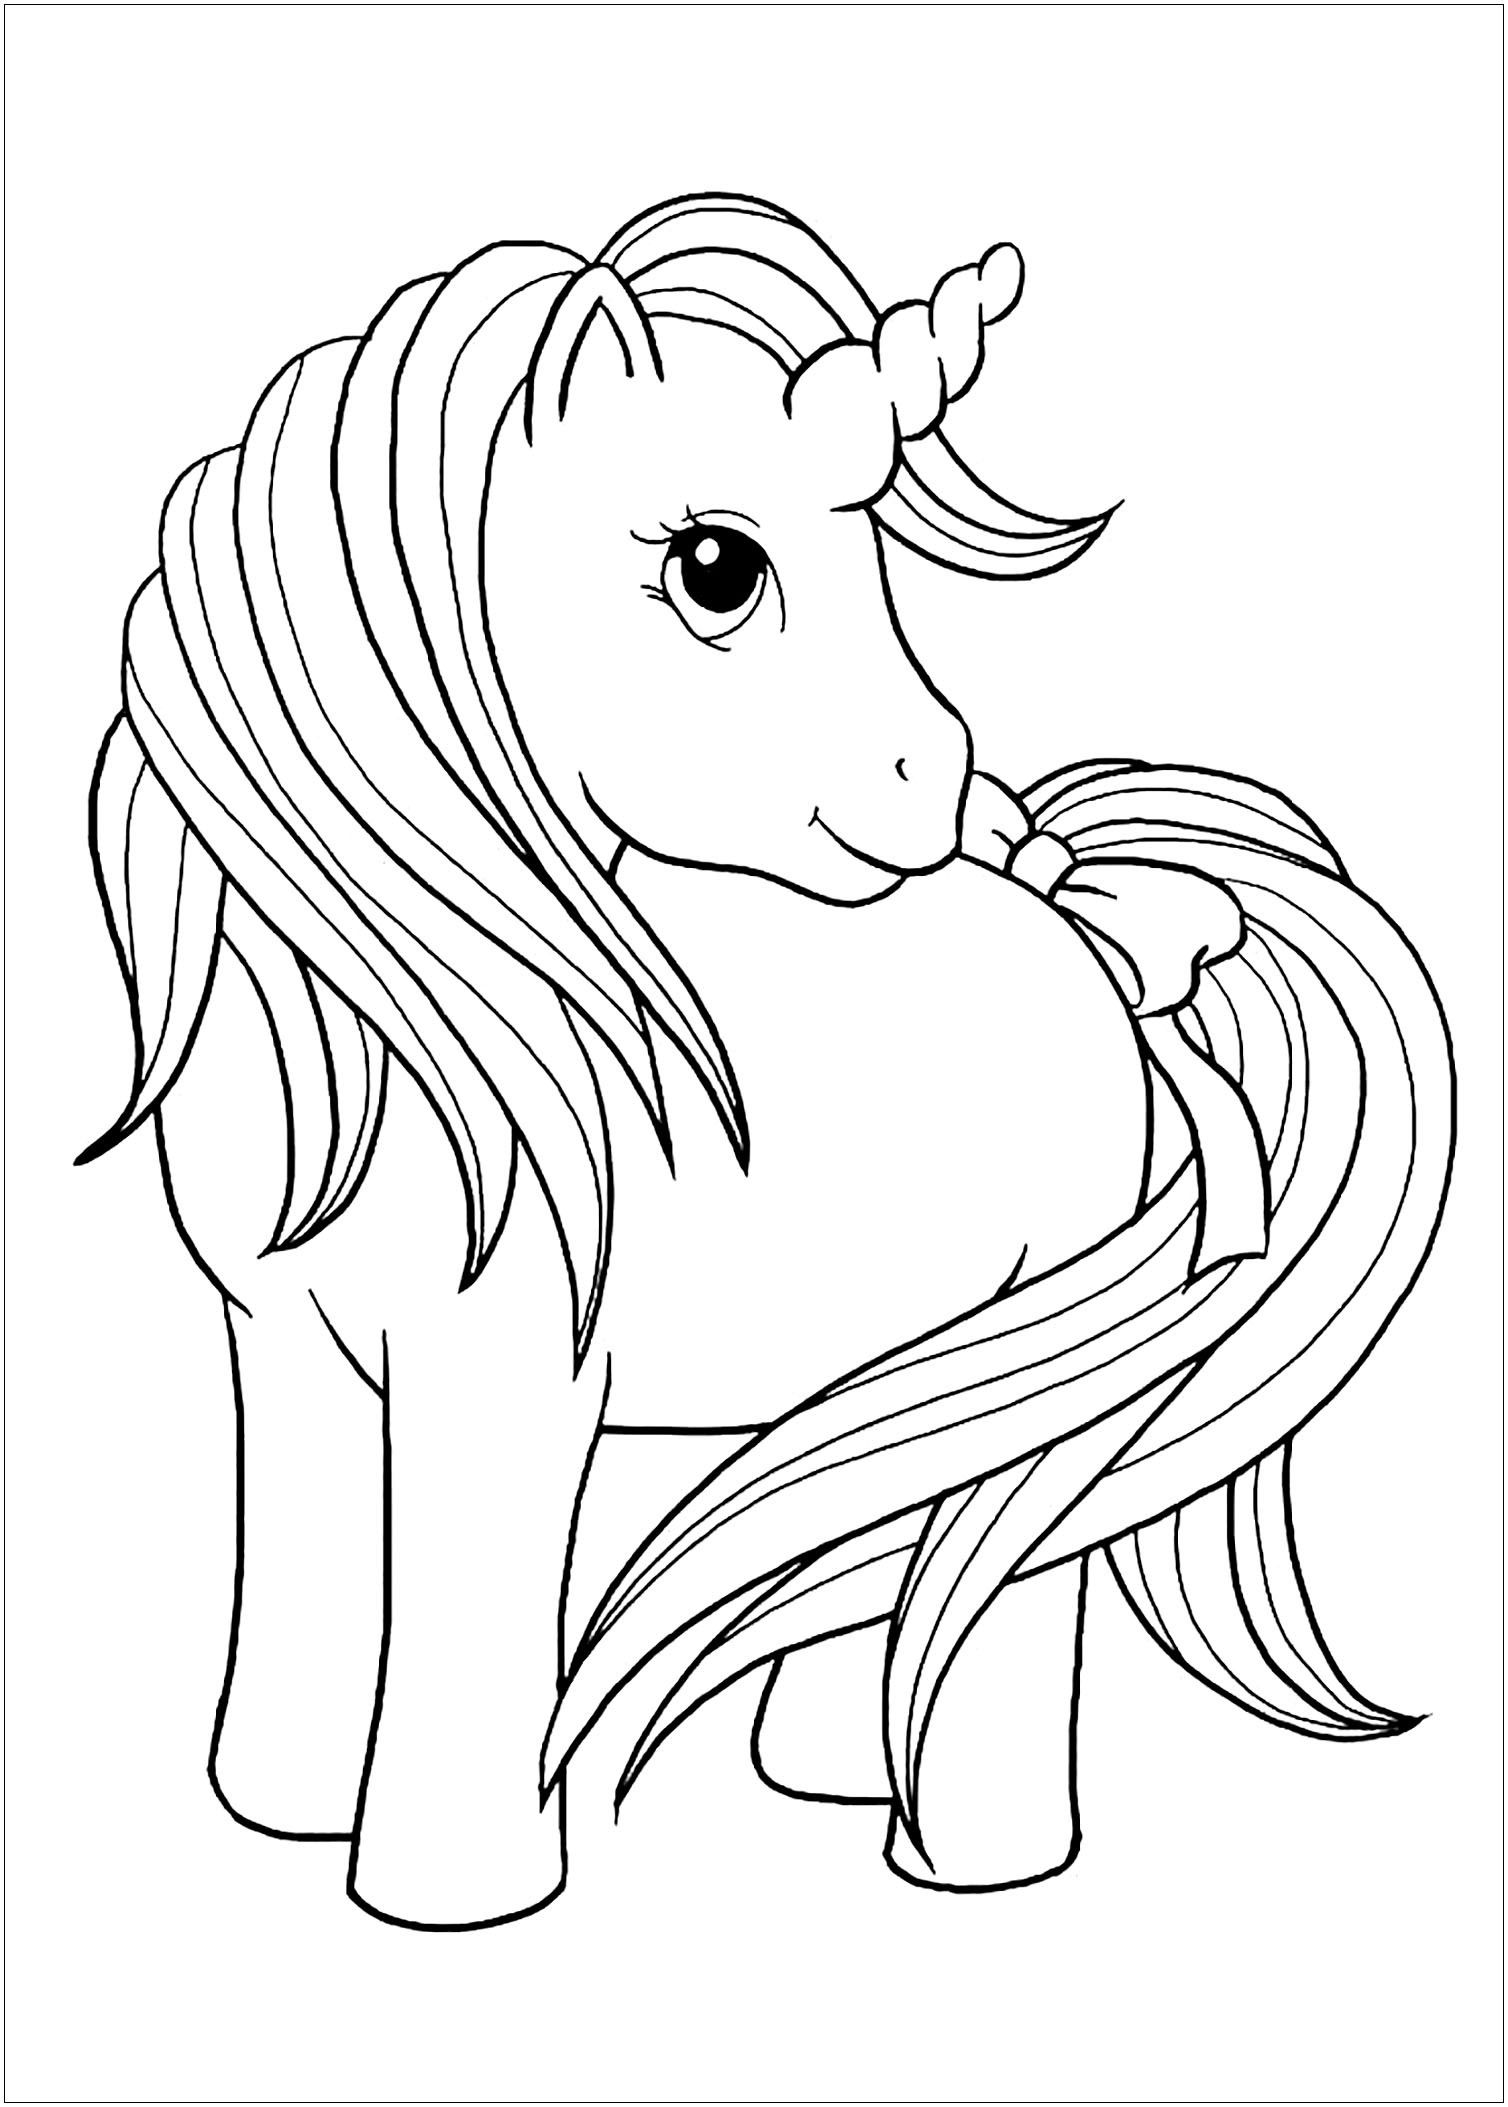 Princess Unicorn Coloring Page in 2020